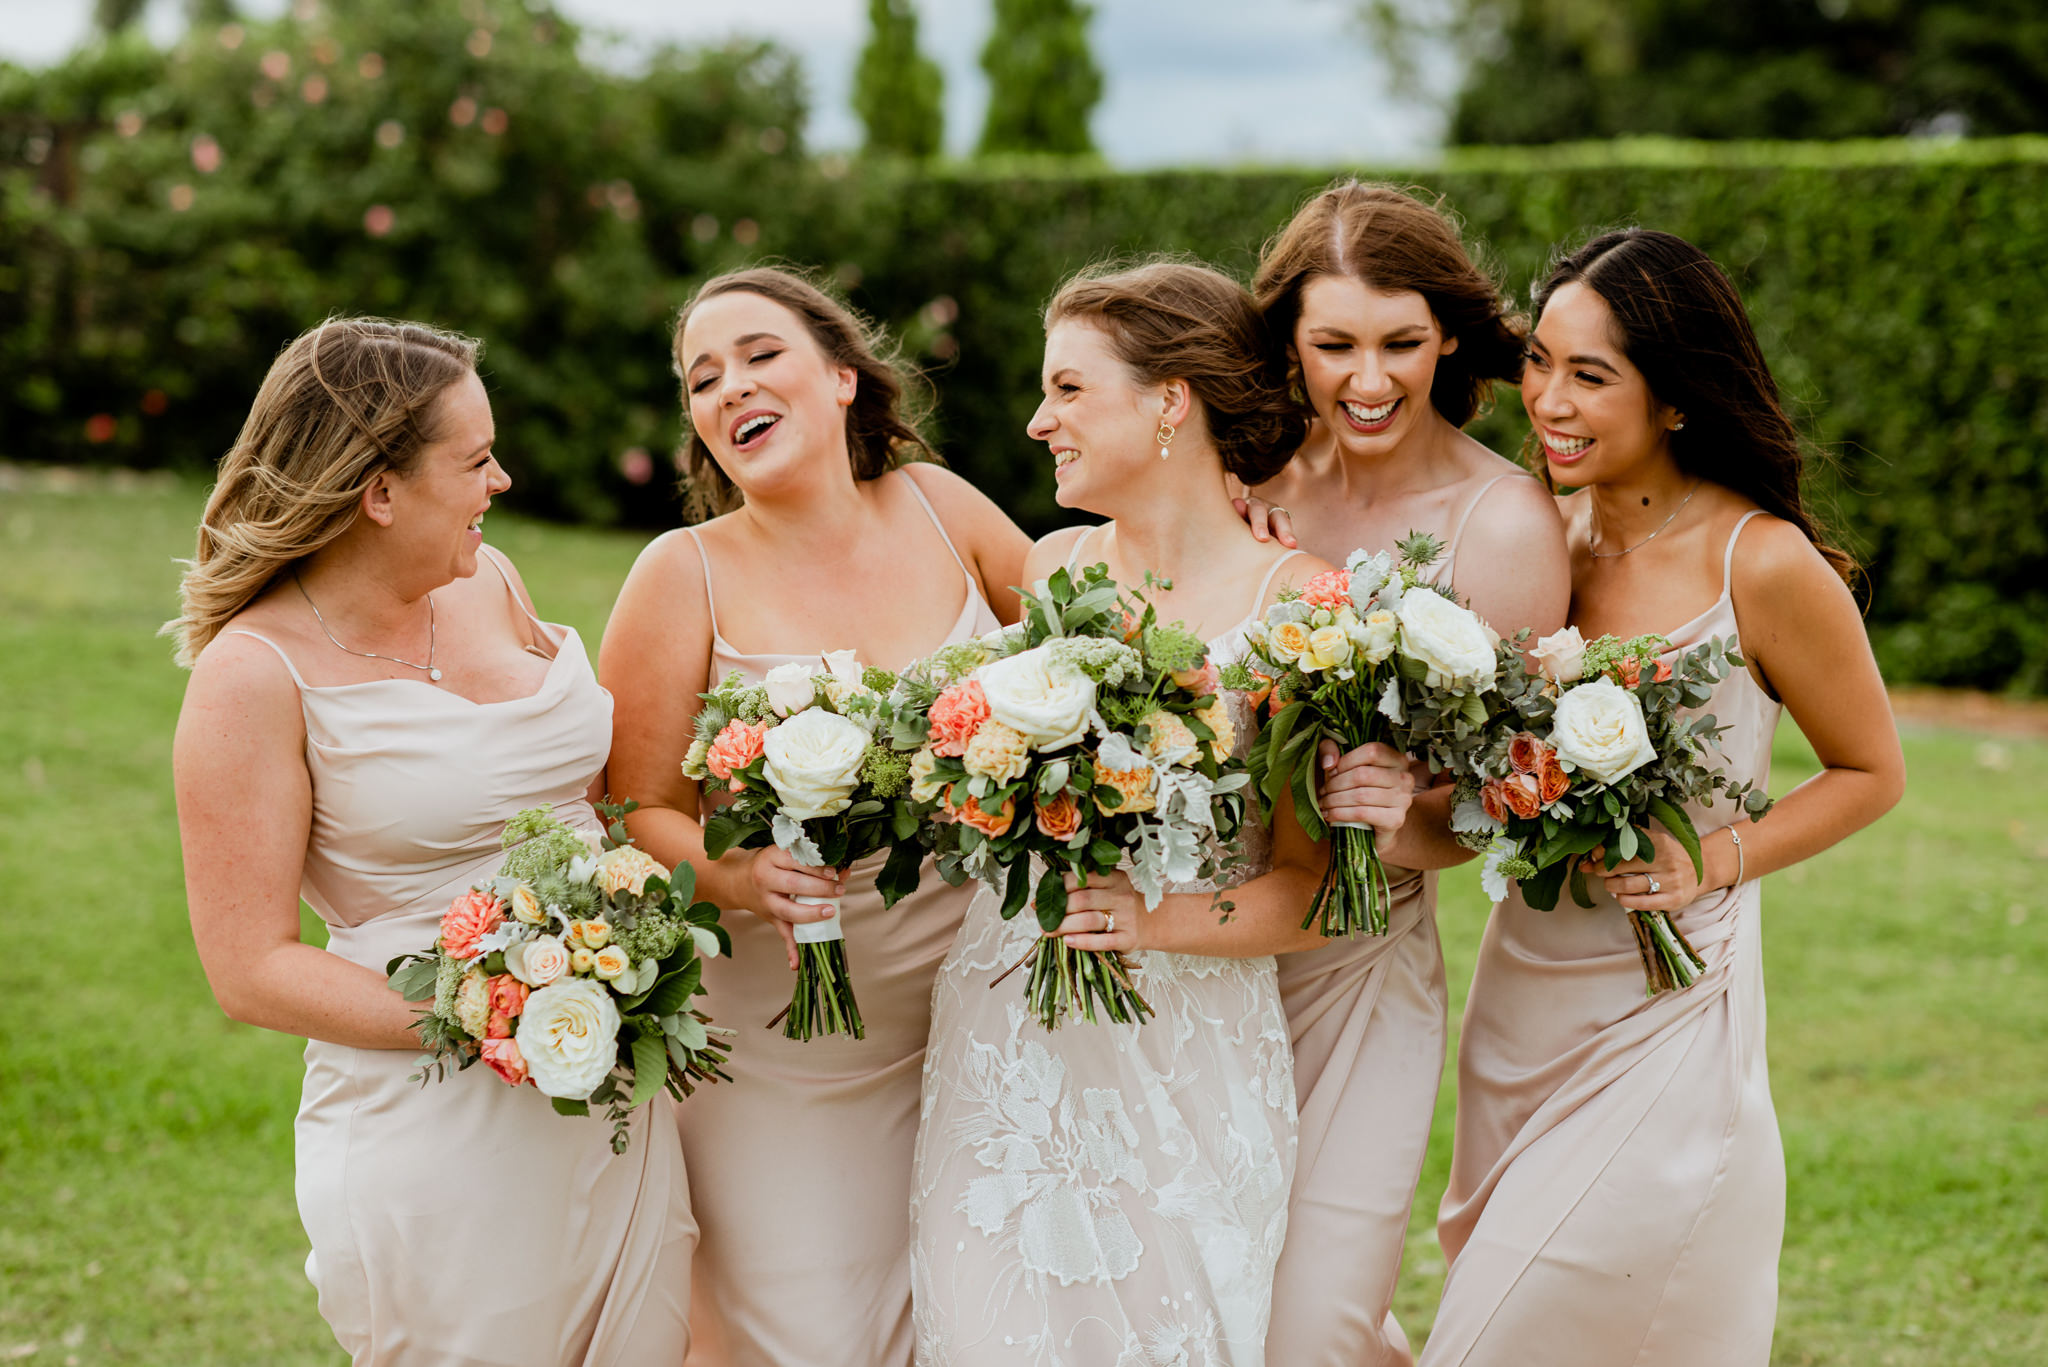 Bridesmaids and bride together in a line laughing